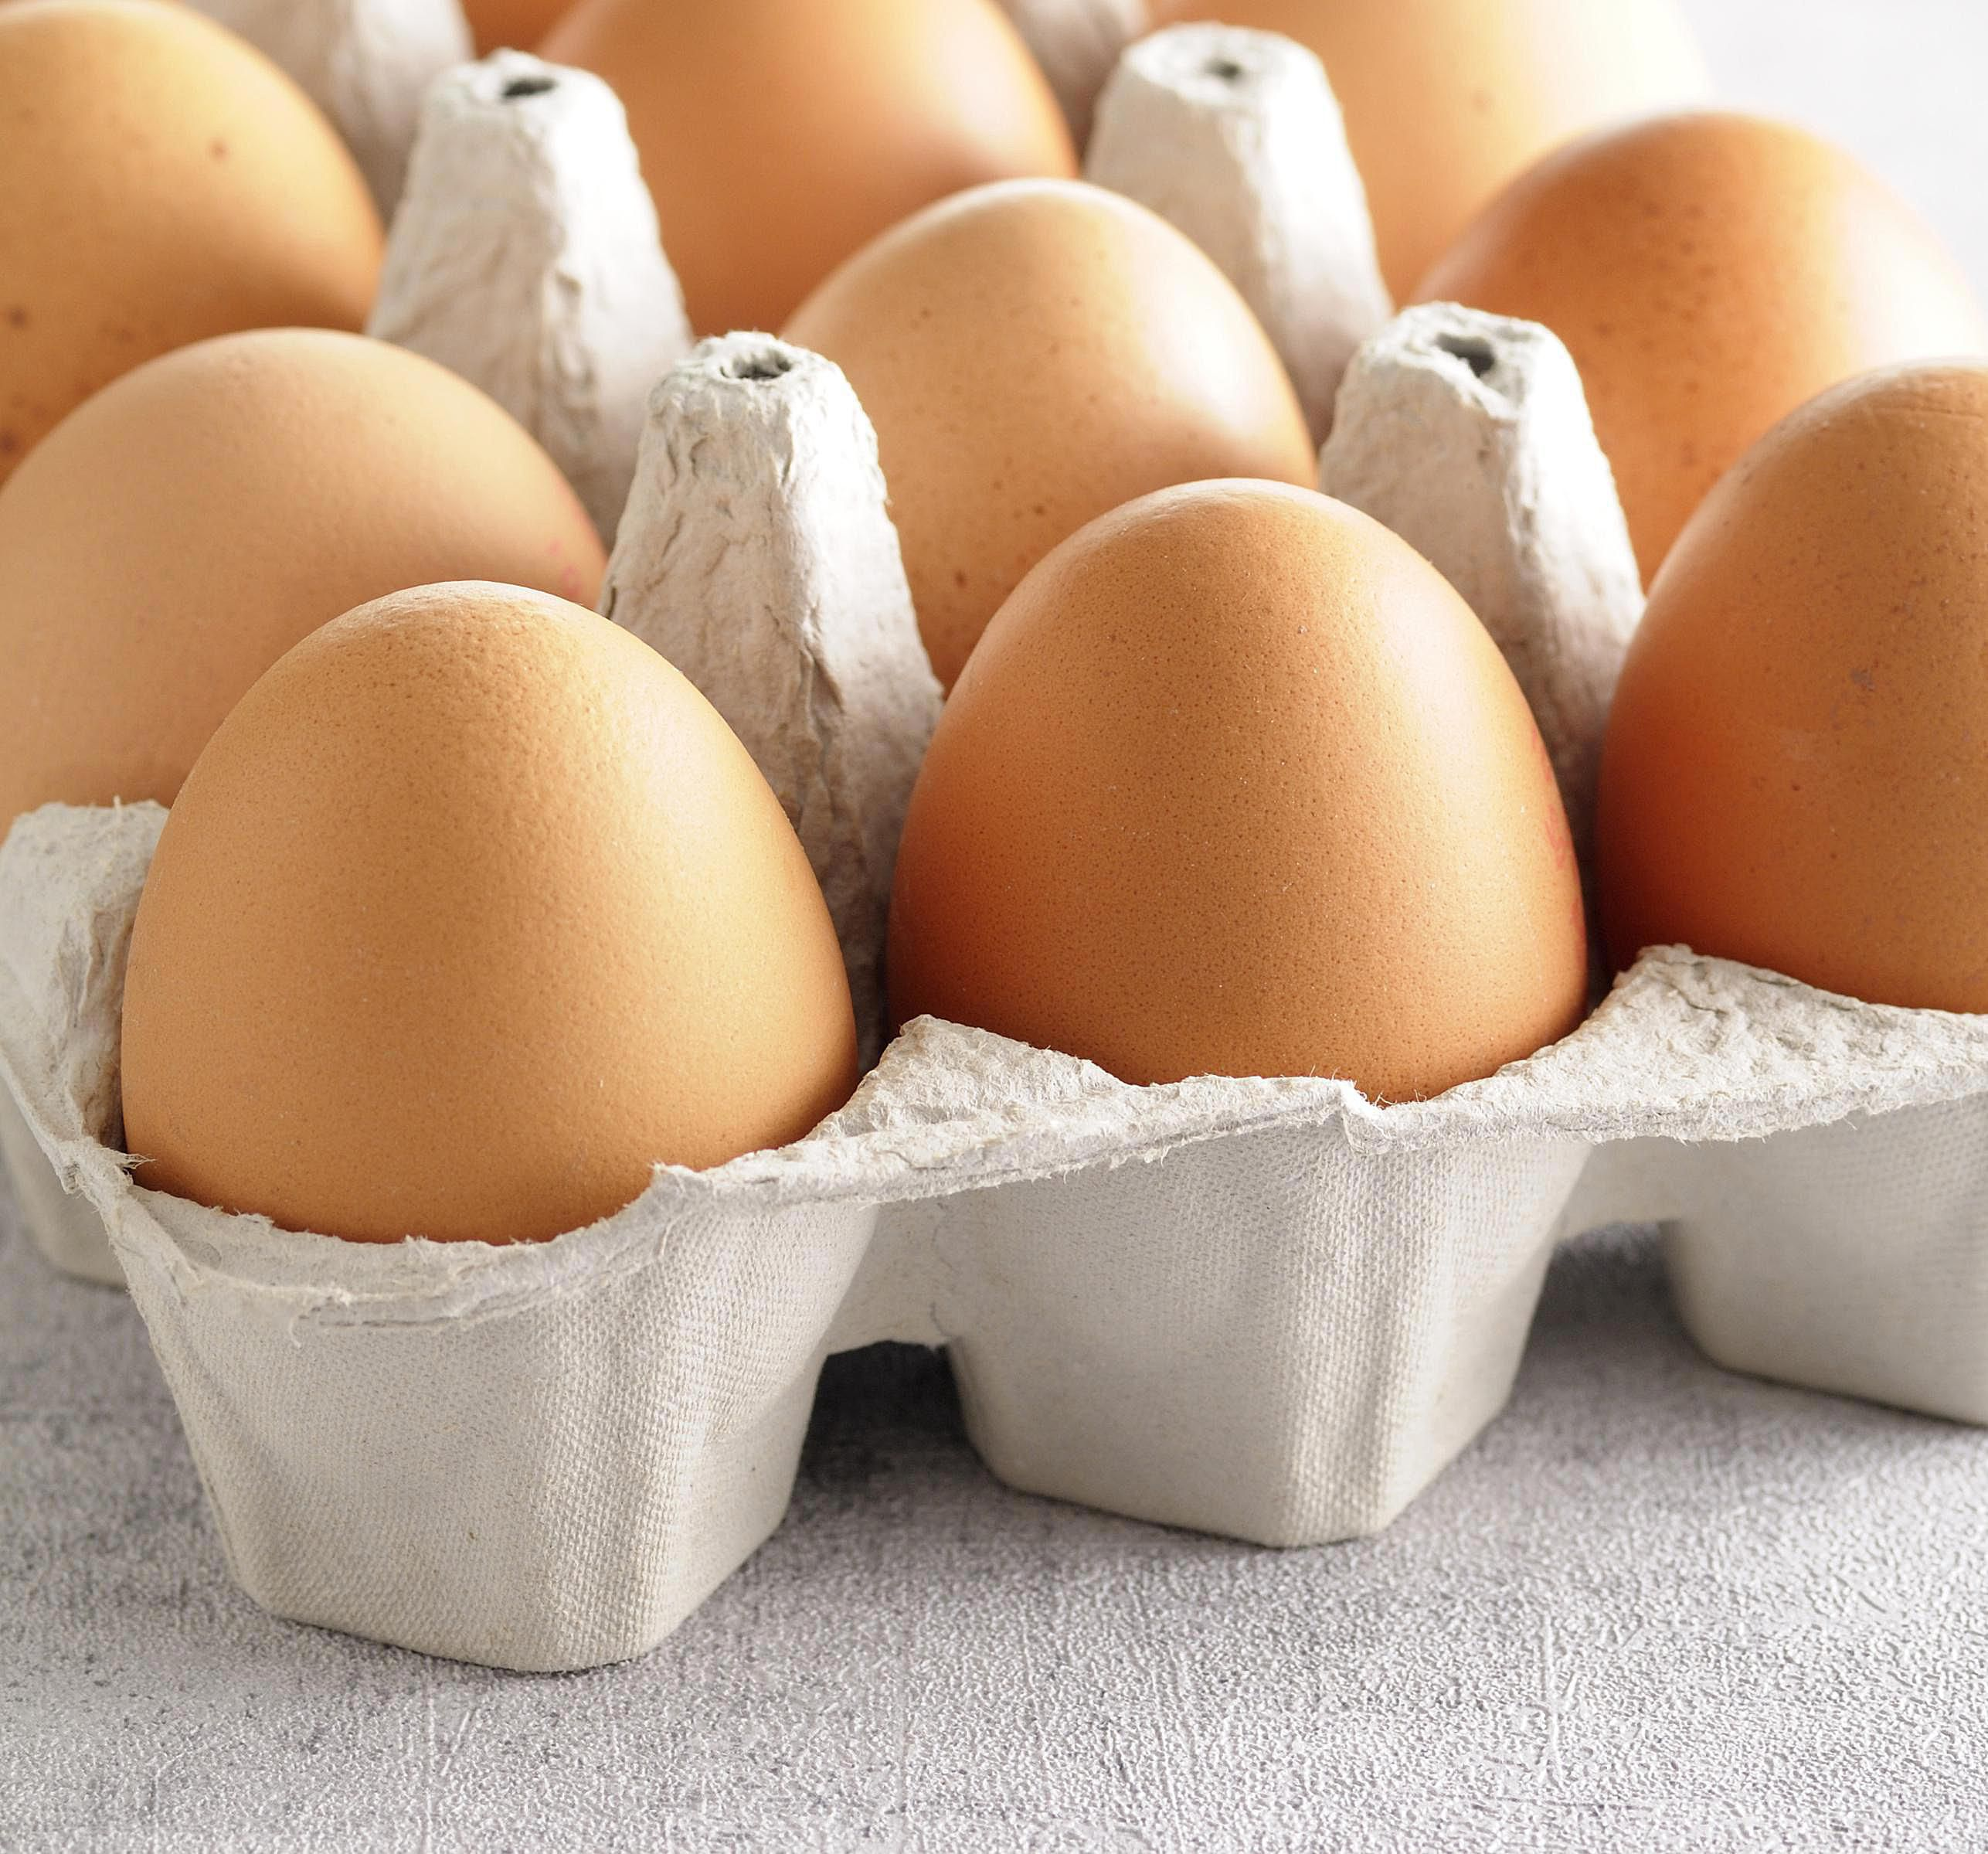 are eggs included in a vegetarian diet